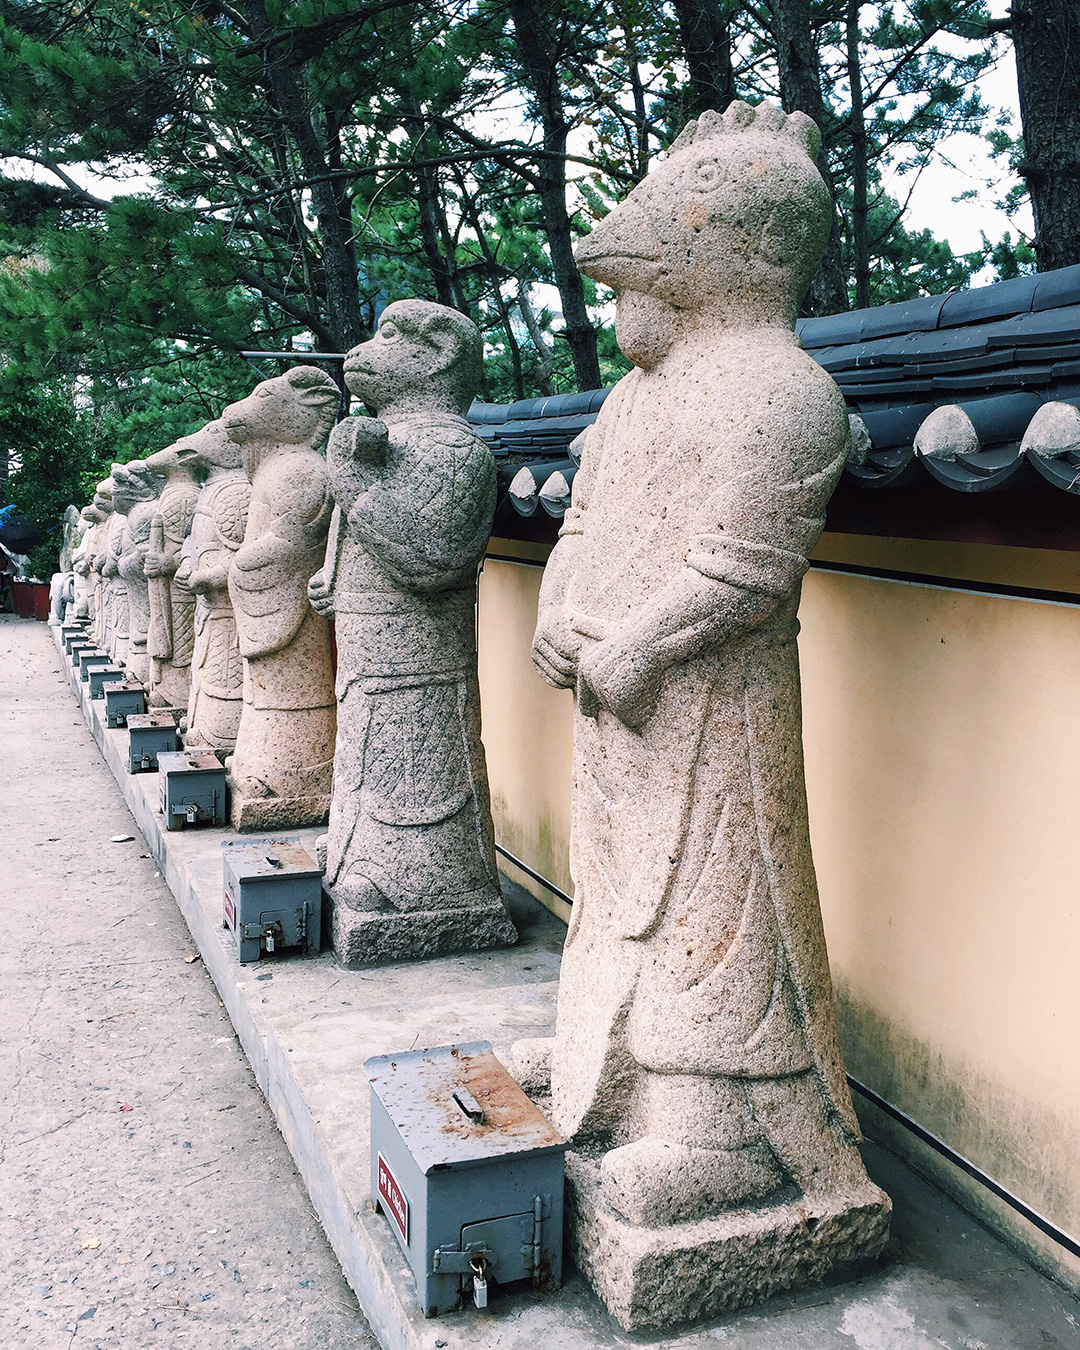 Chinese Zodiac sculptures line the entry to the temple.